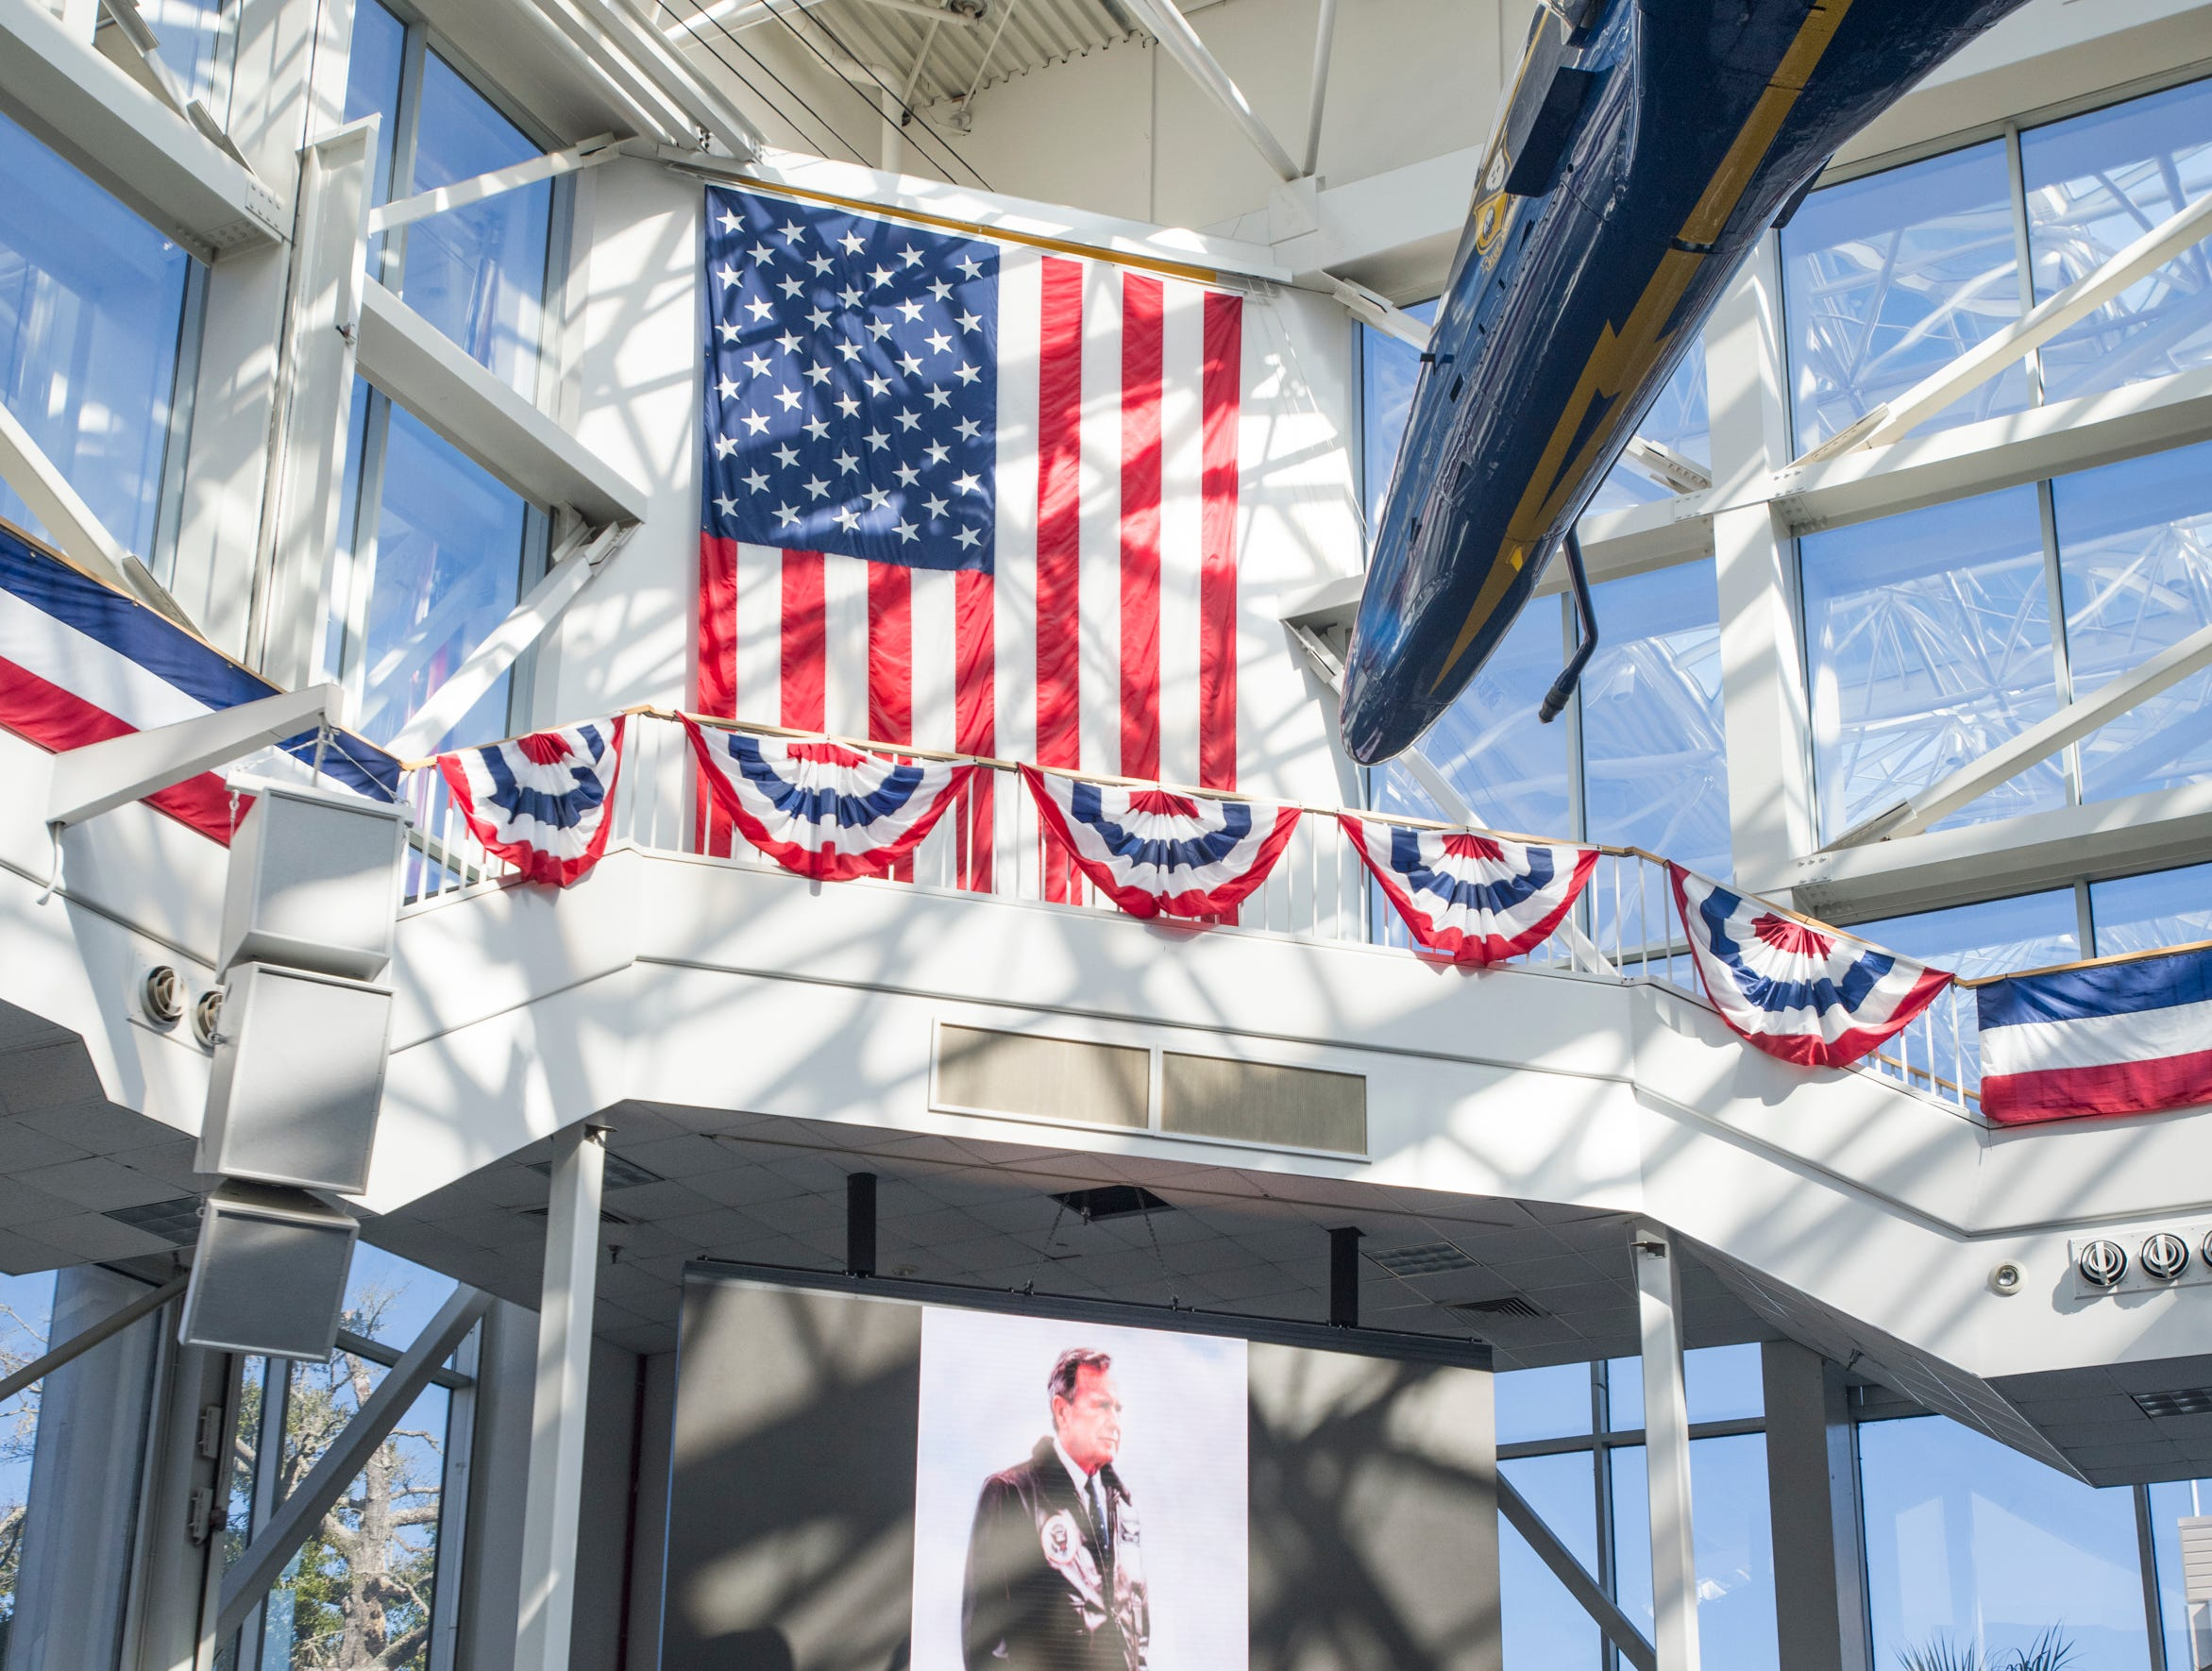 A portrait of President George H.W. Bush is displayed on the monitor in the atrium at the National Naval Aviation Museum in Pensacola on Wednesday, December 5, 2018.